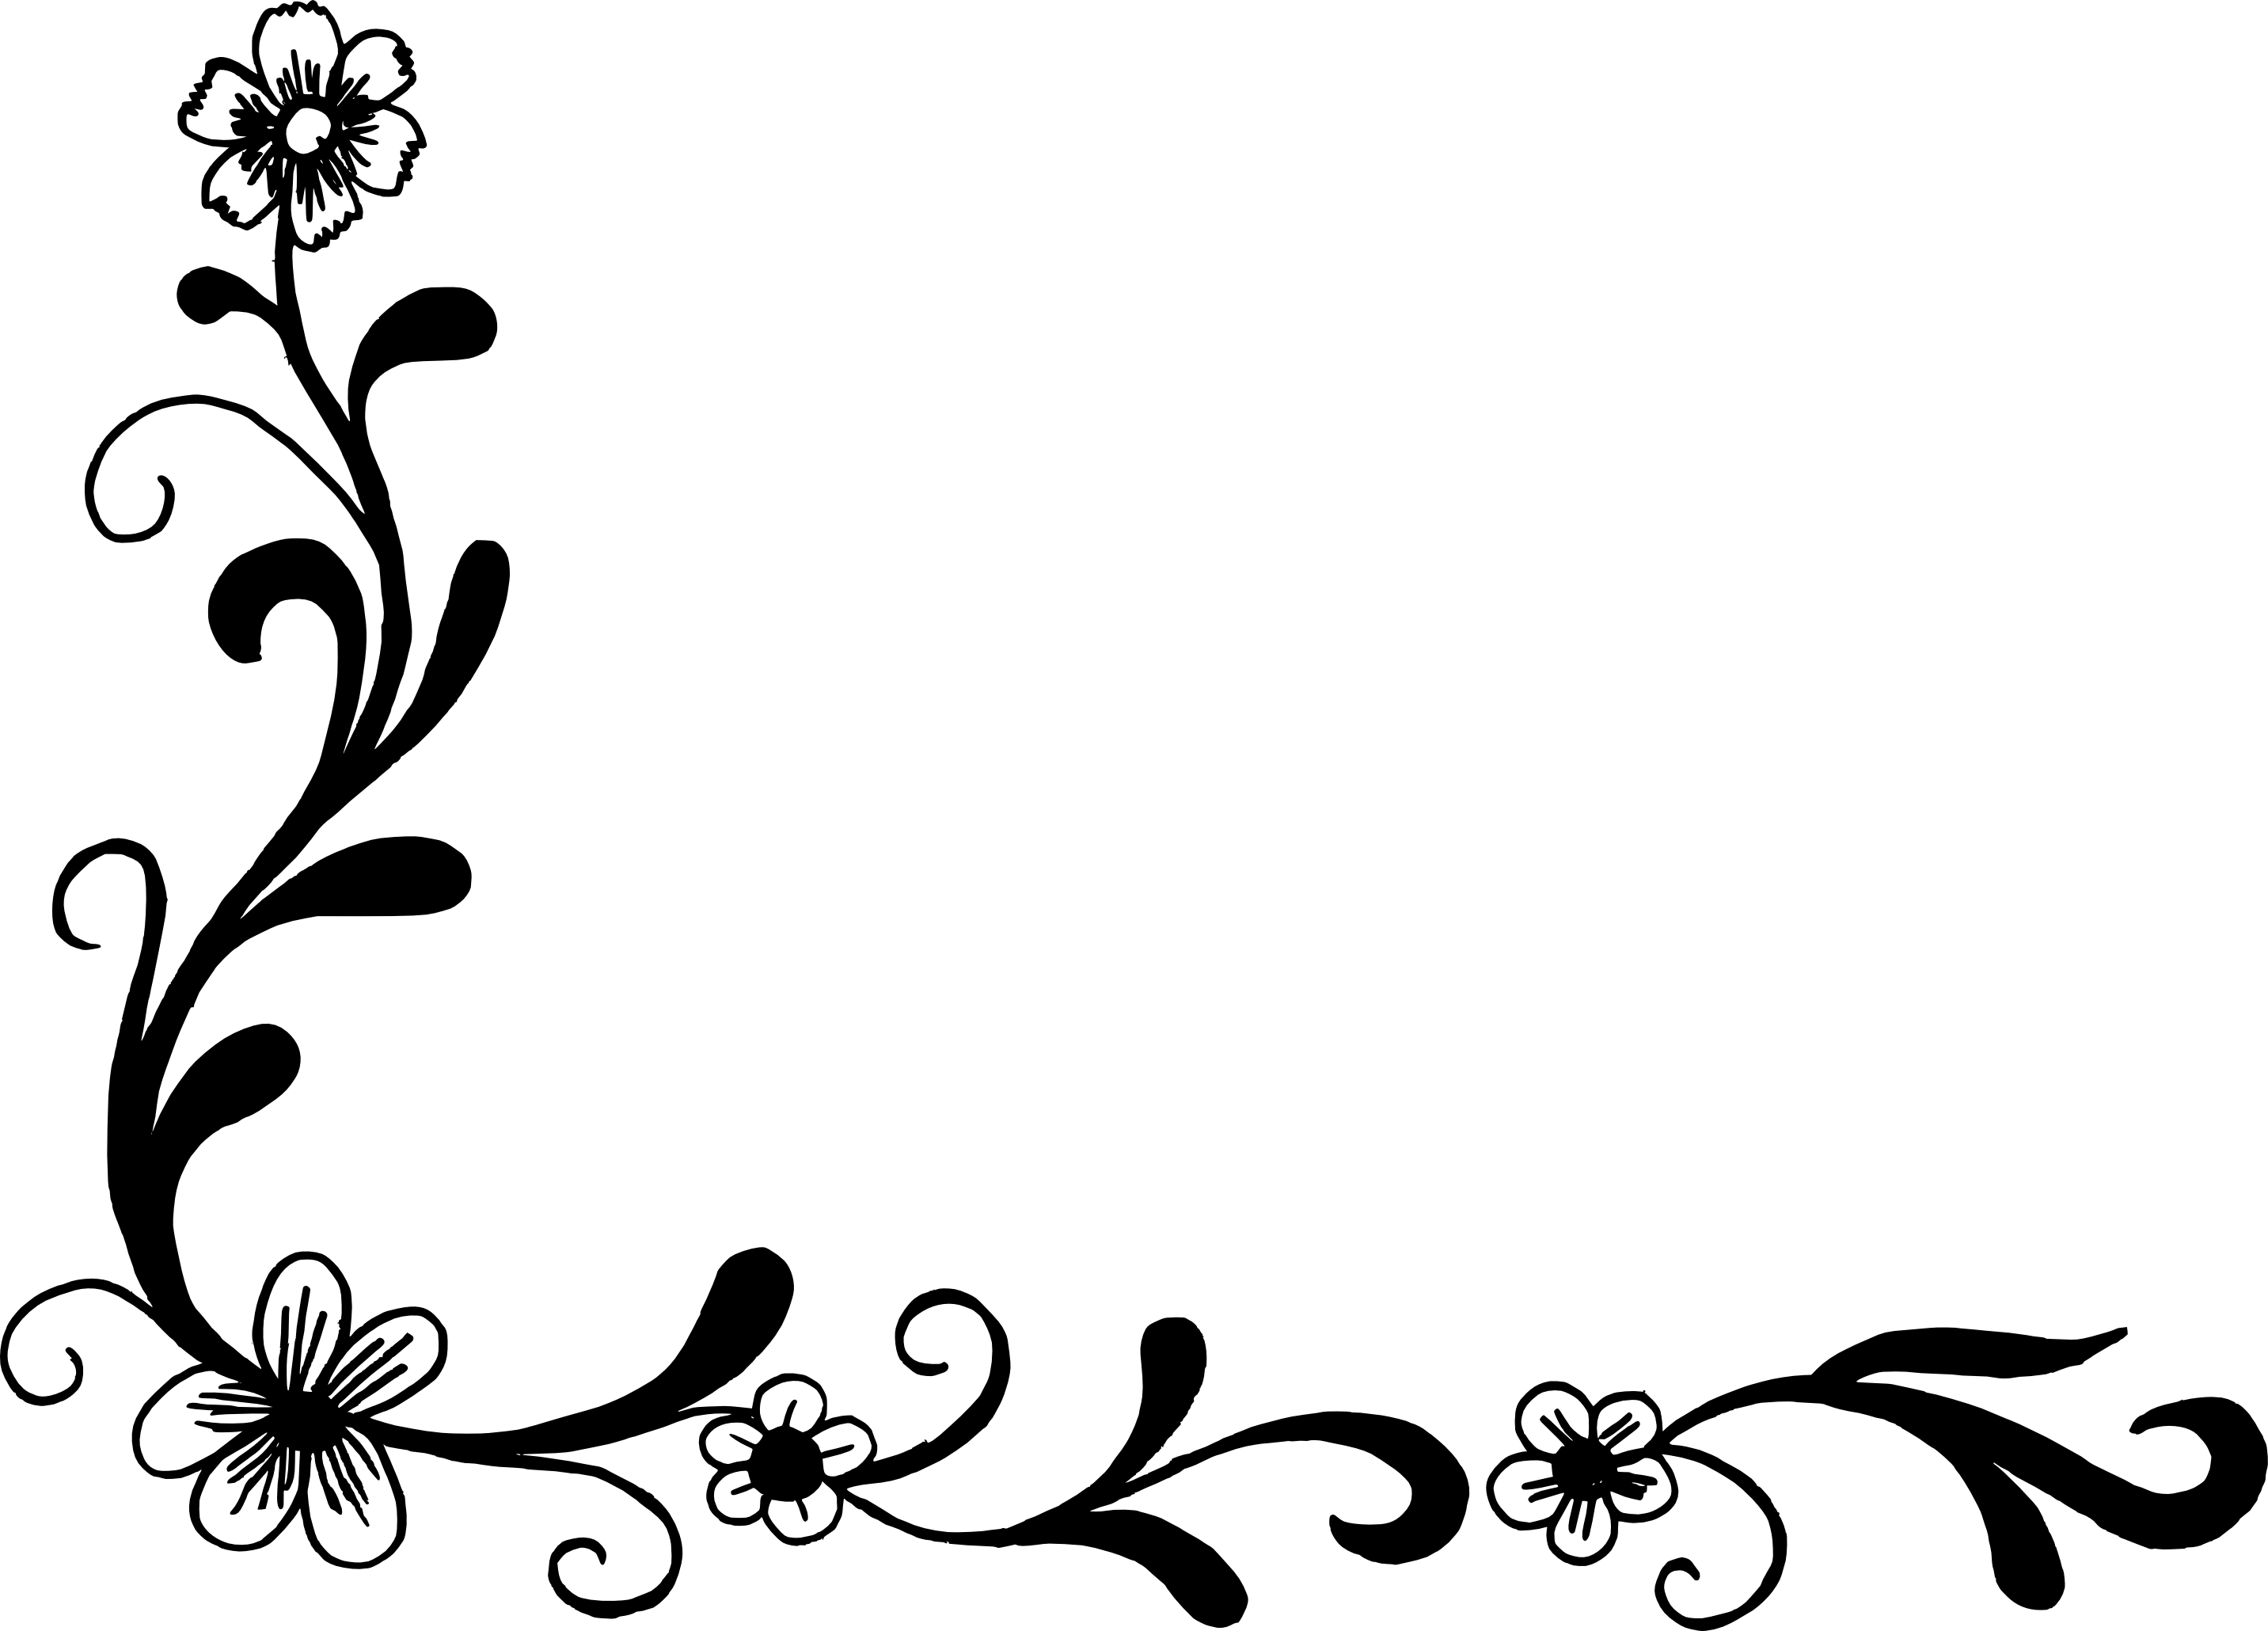 18 flower corner vector png transparent svg onlygfx com 18 flower corner vector png